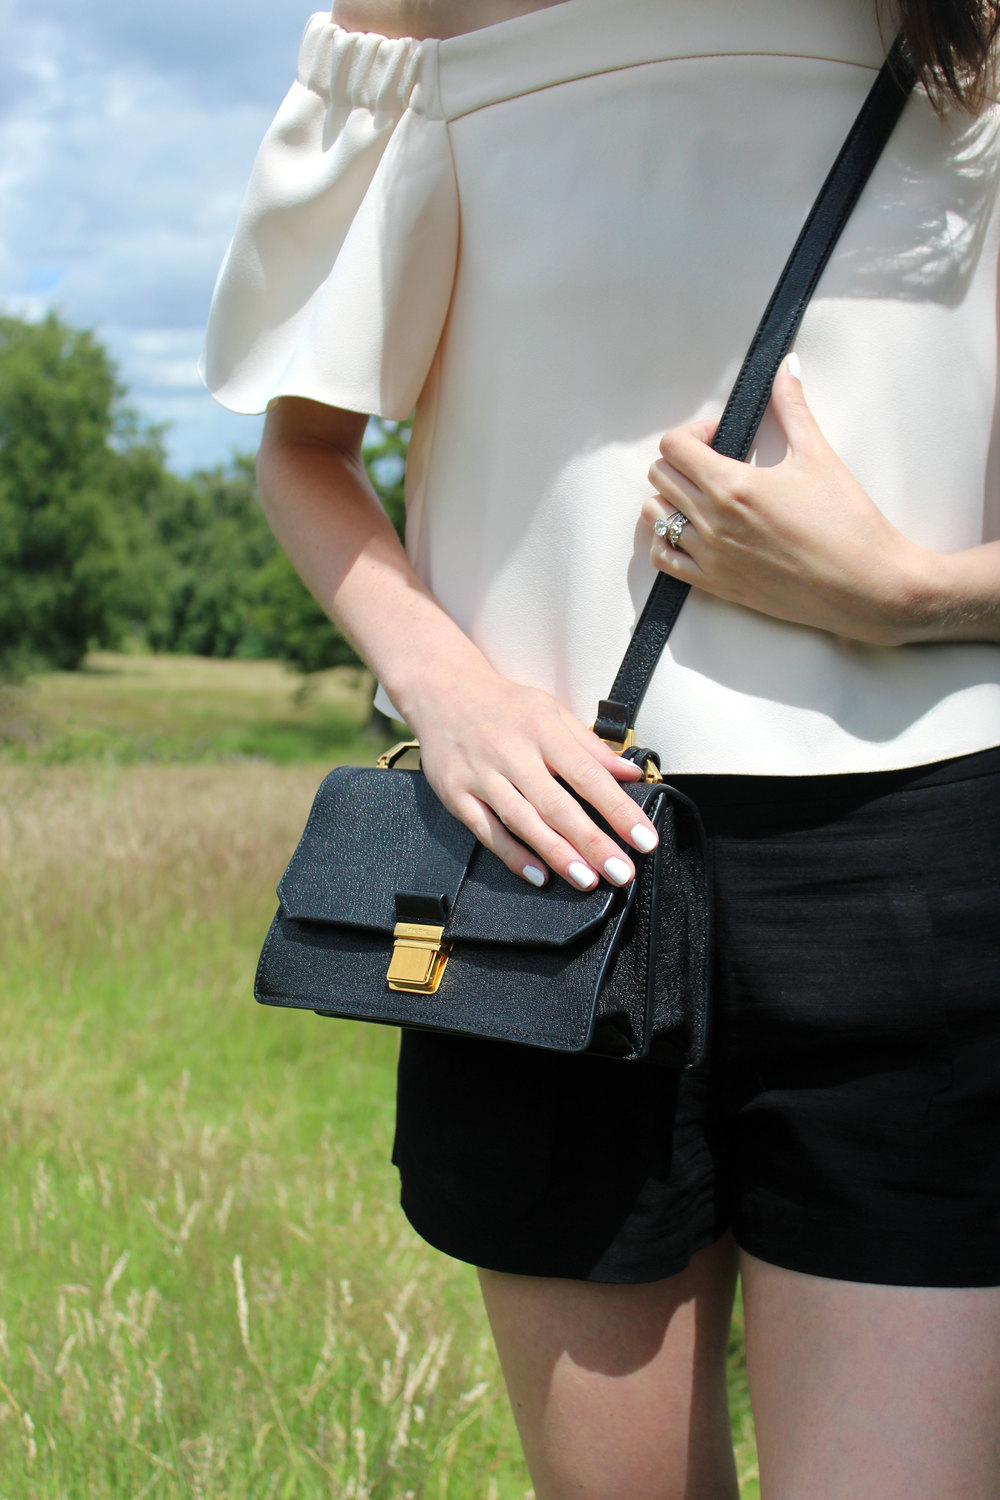 a35504fd56b Miu Miu bag and Topshop blush pink off the shoulder top at Hampstead Heath